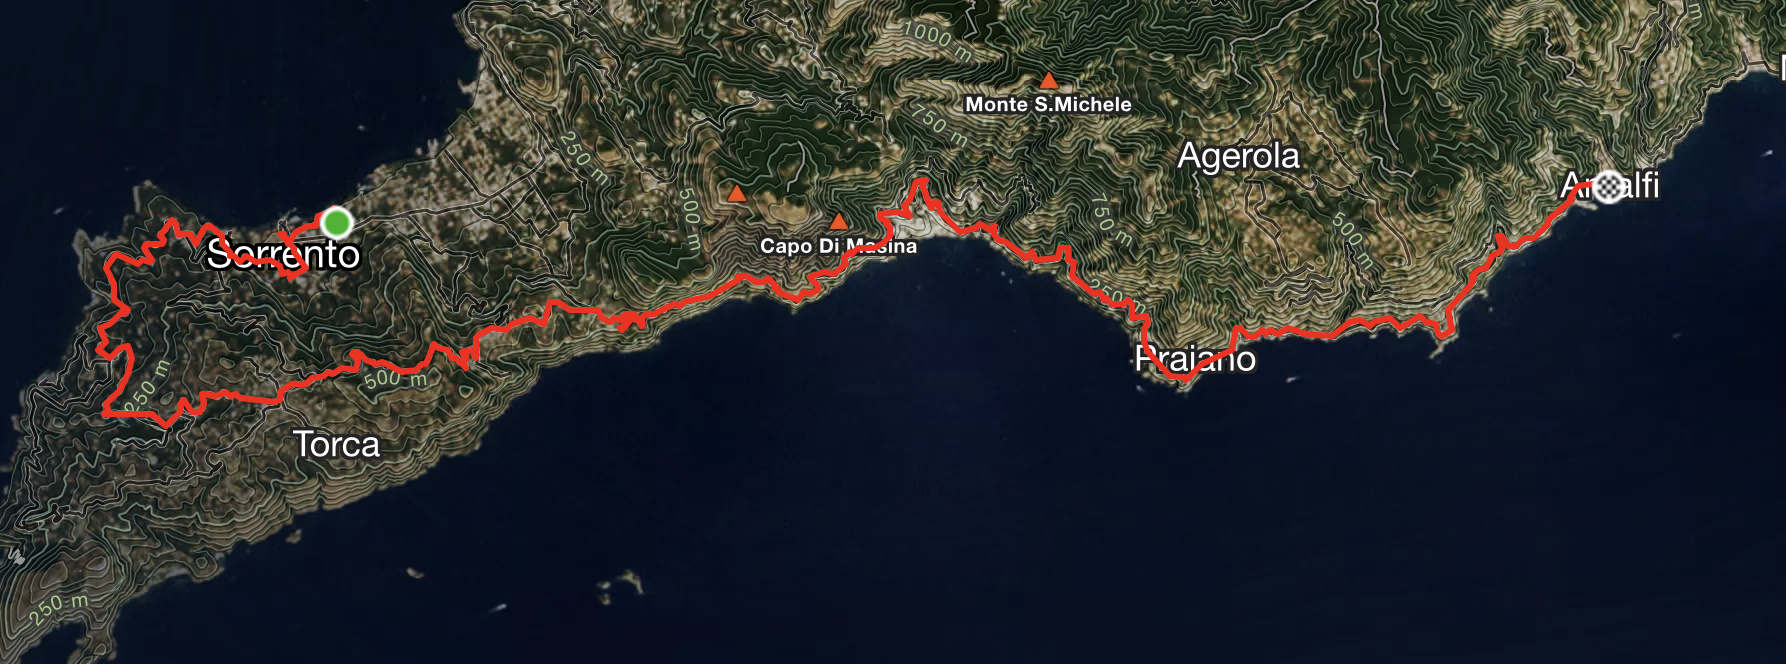 Satellite map showing bike route from Sorrento to Amalfi